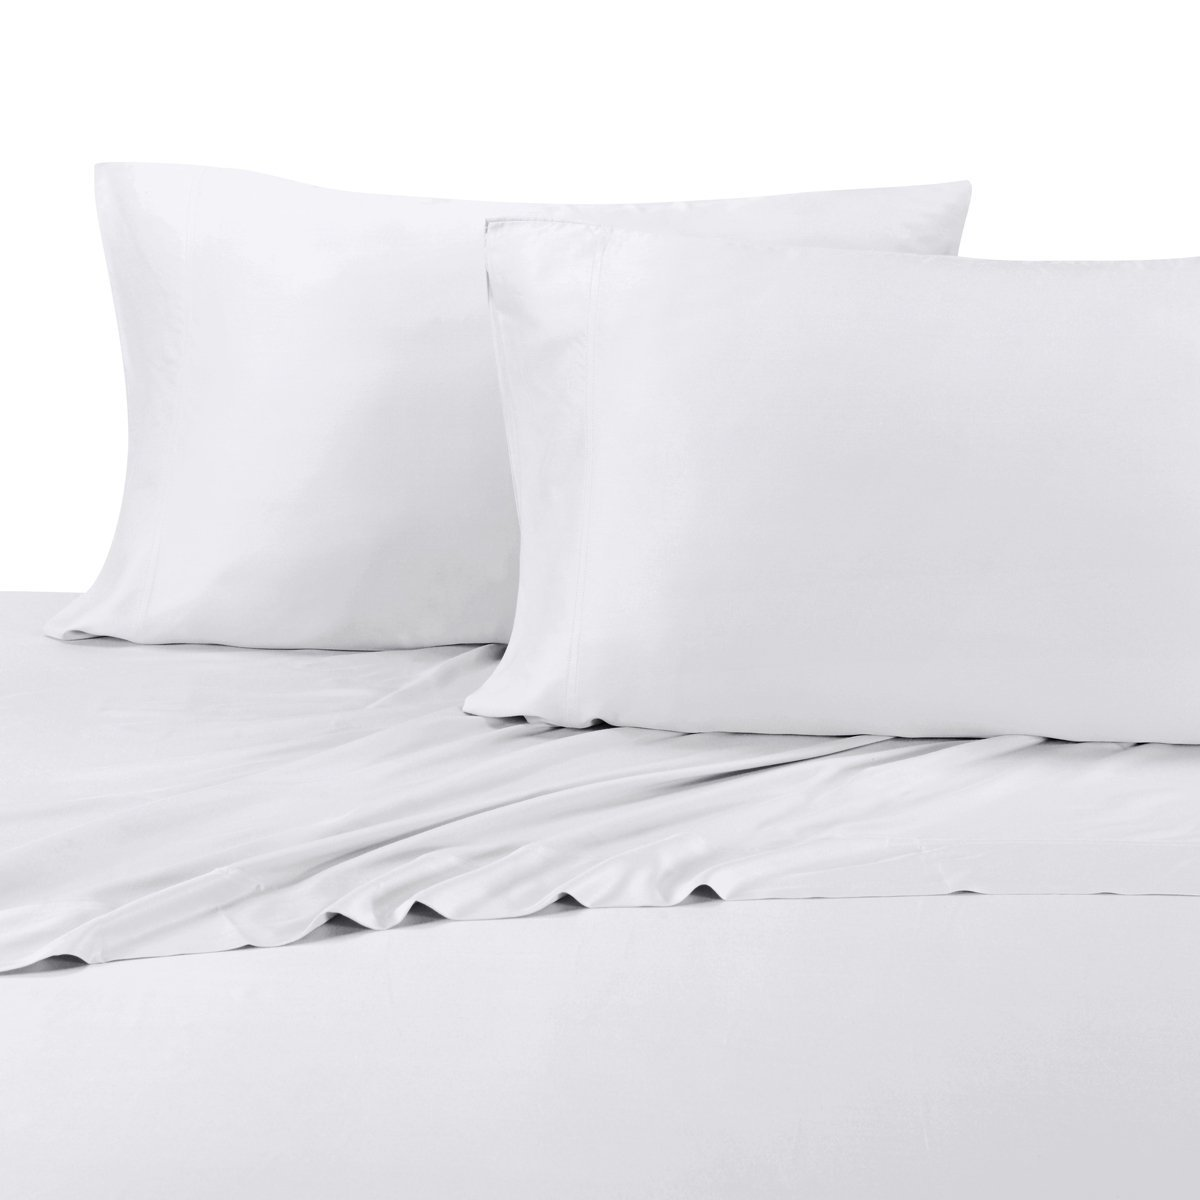 Uncategorized britannica home fashions tencel sheets - Amazon Com Tencel Eucalyptus Abripedic Soft Cool Sheets Luxurious Breathable Made From Sustainable 100 Tencel Fiber From Eucalyptus Trees